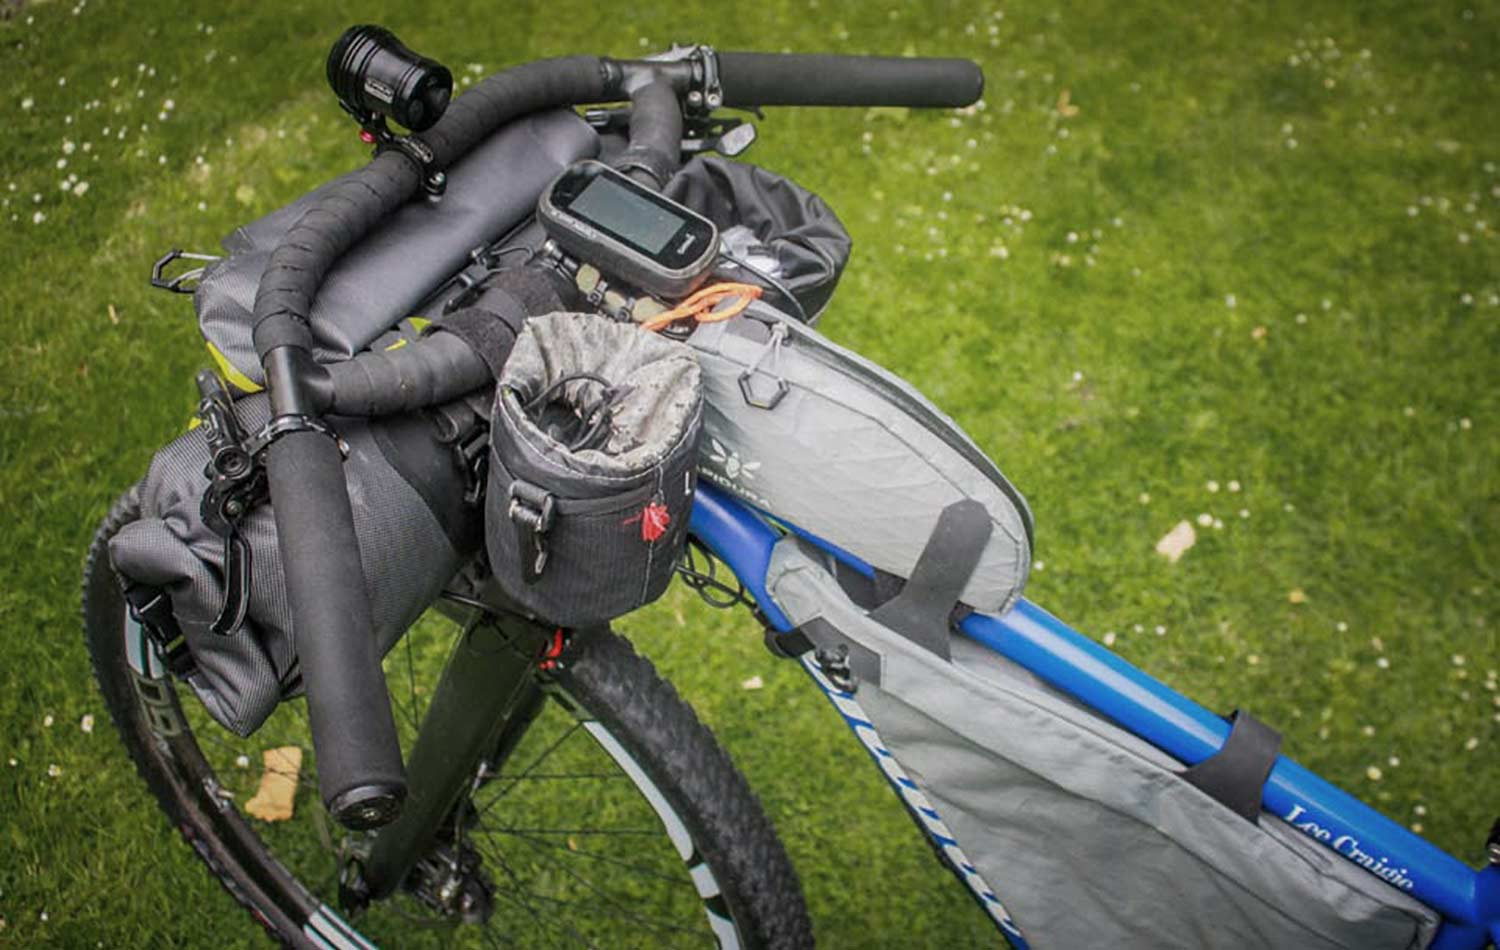 cockpit of lee craigie bike with apidura backcountry top tube packs solo female cycling